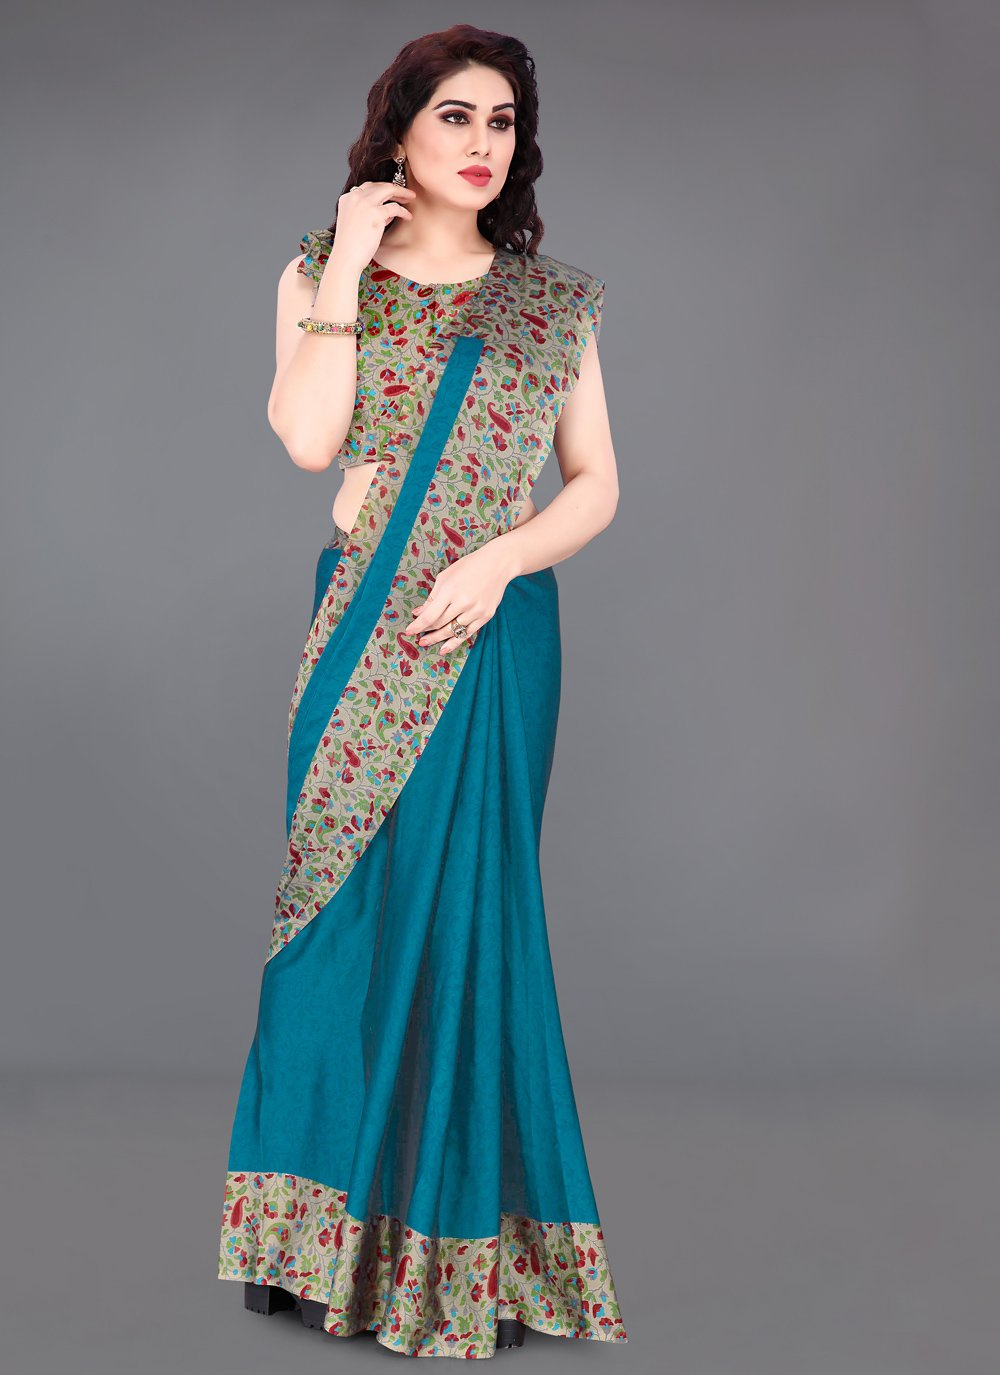 Faux Chiffon Turquoise Abstract Print Casual Saree